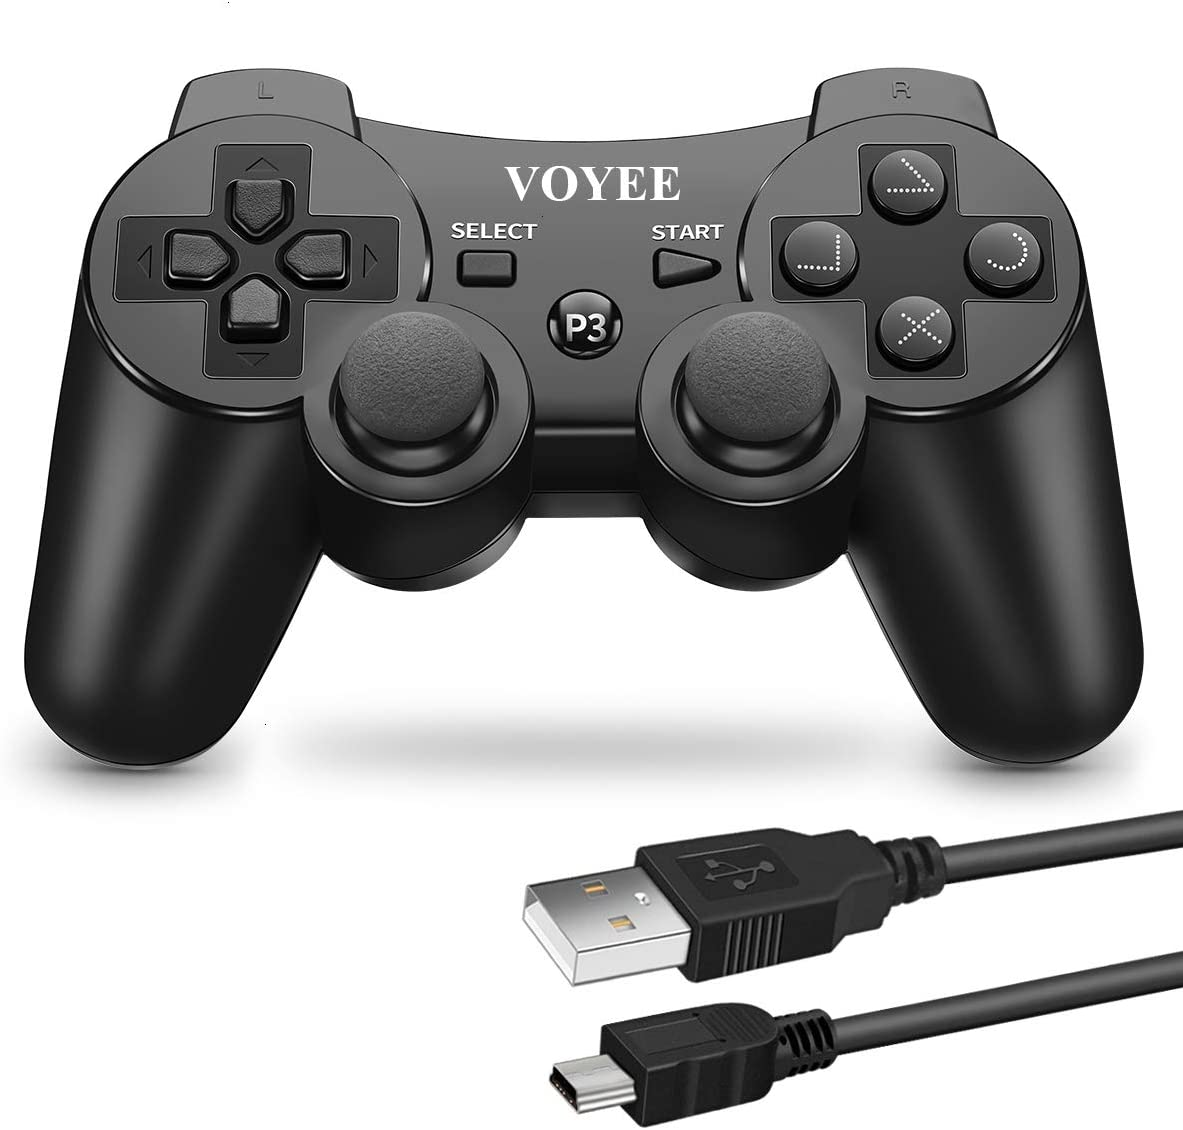 VOYEE PS3 Controller Wireless for Sony Playstation 3 with Upgraded Joystick/Battery/Motors (Black)